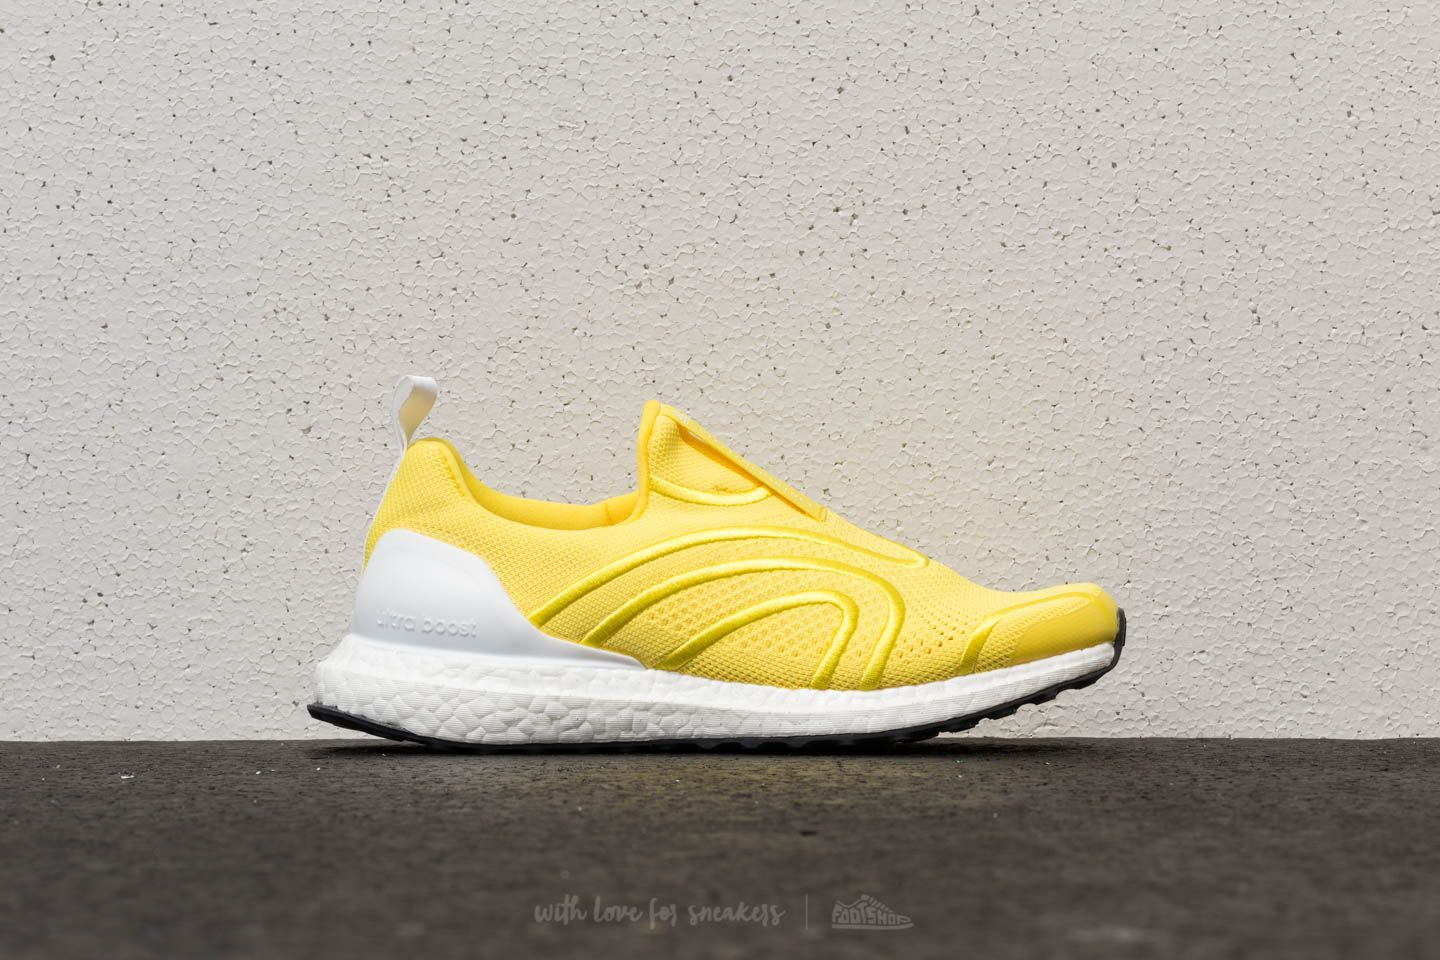 7d0fc262a adidas x Stella McCartney Ultraboost Uncaged Vivid Yellow  Ftw White  Night  Steel at a